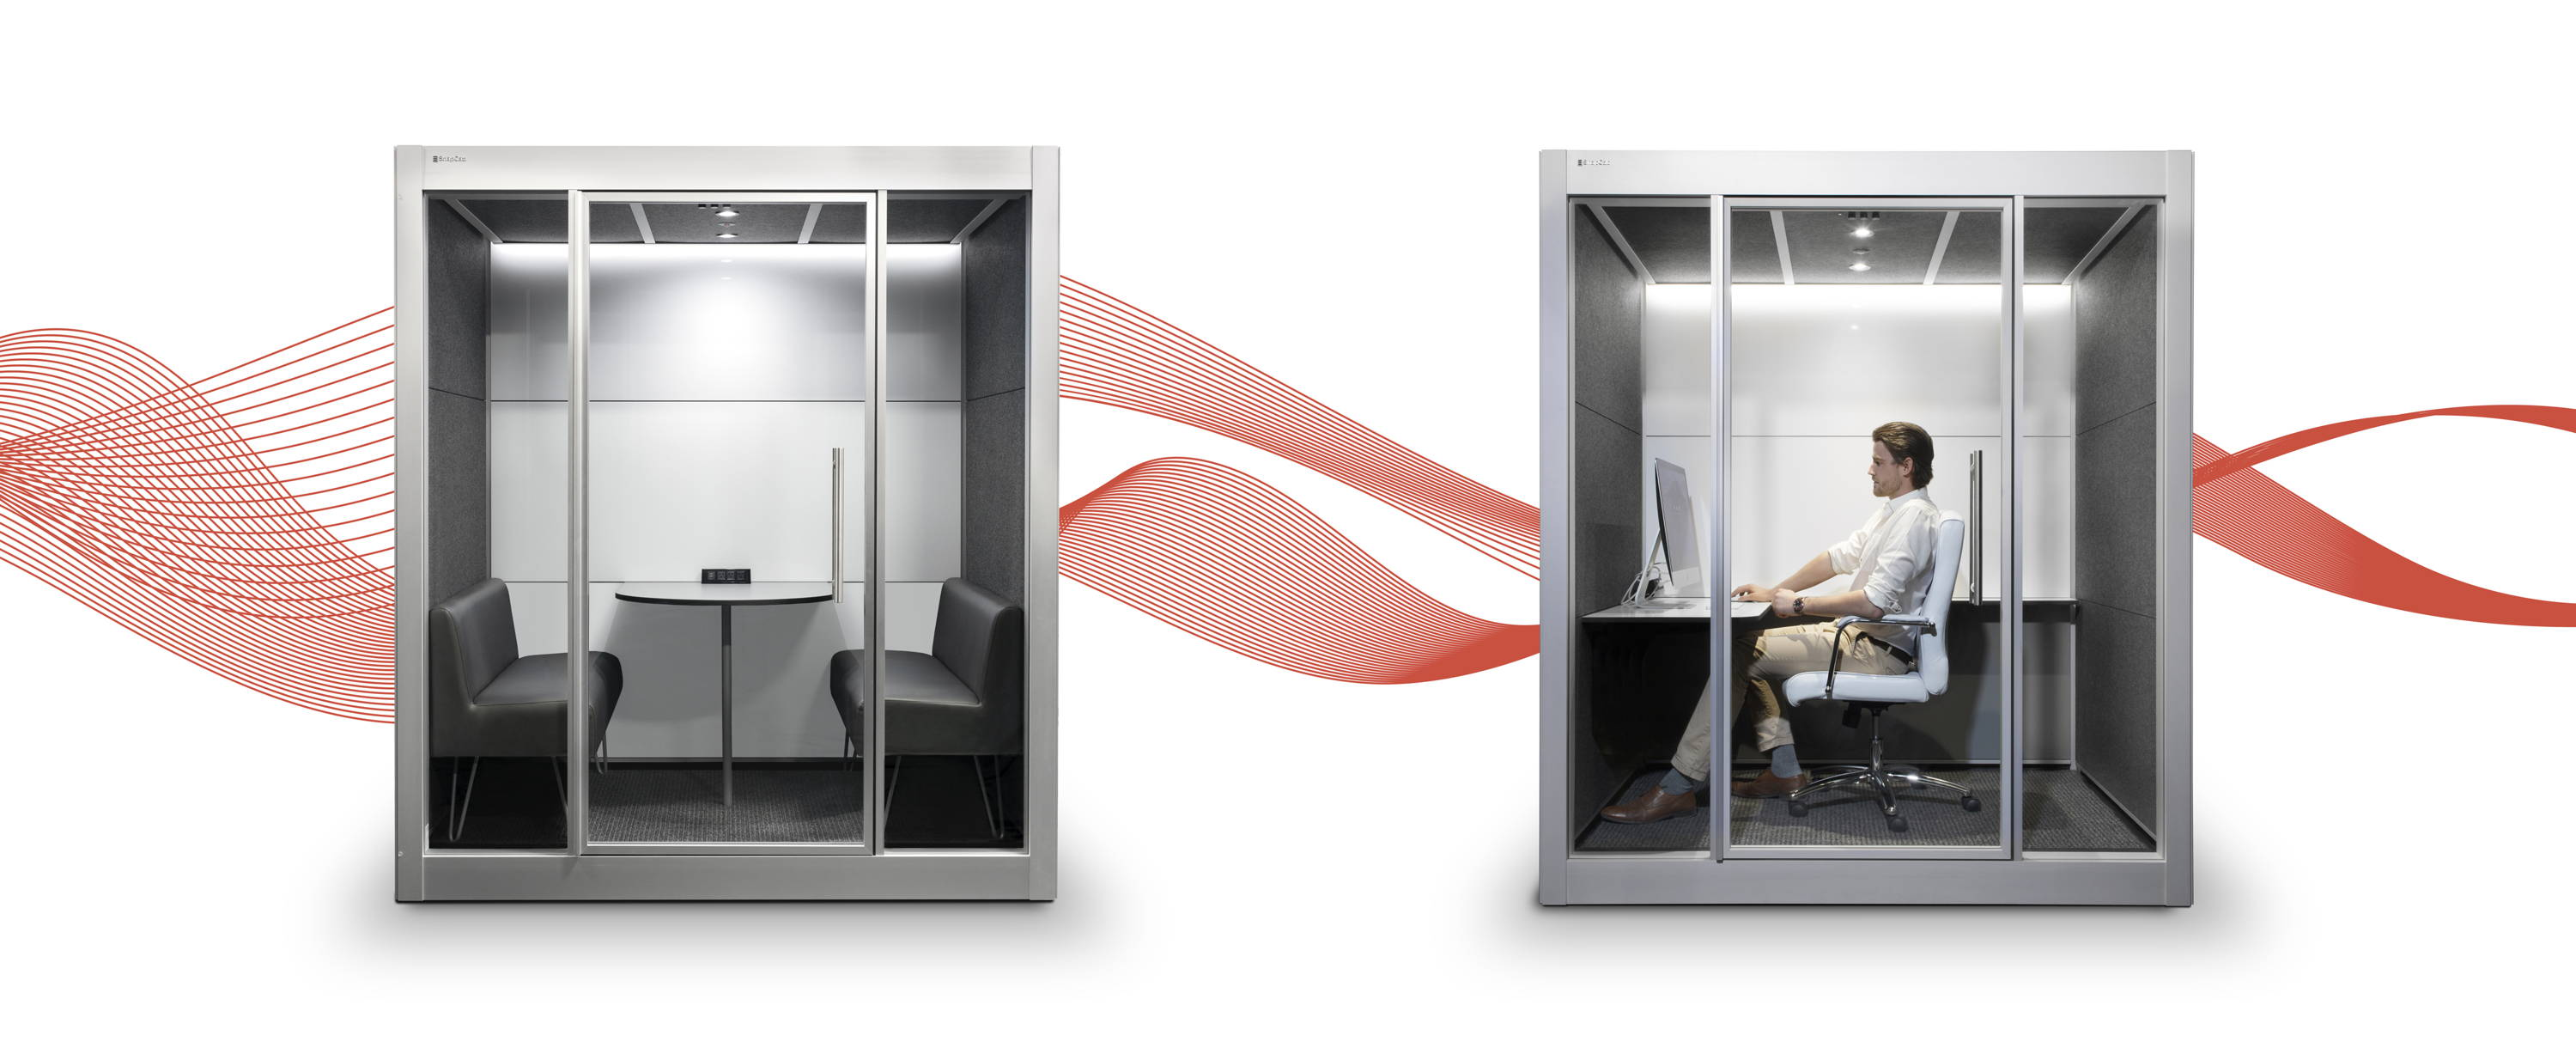 SnapCab's Meet 4 and SnapCab Work+ office pods with white and PET panels